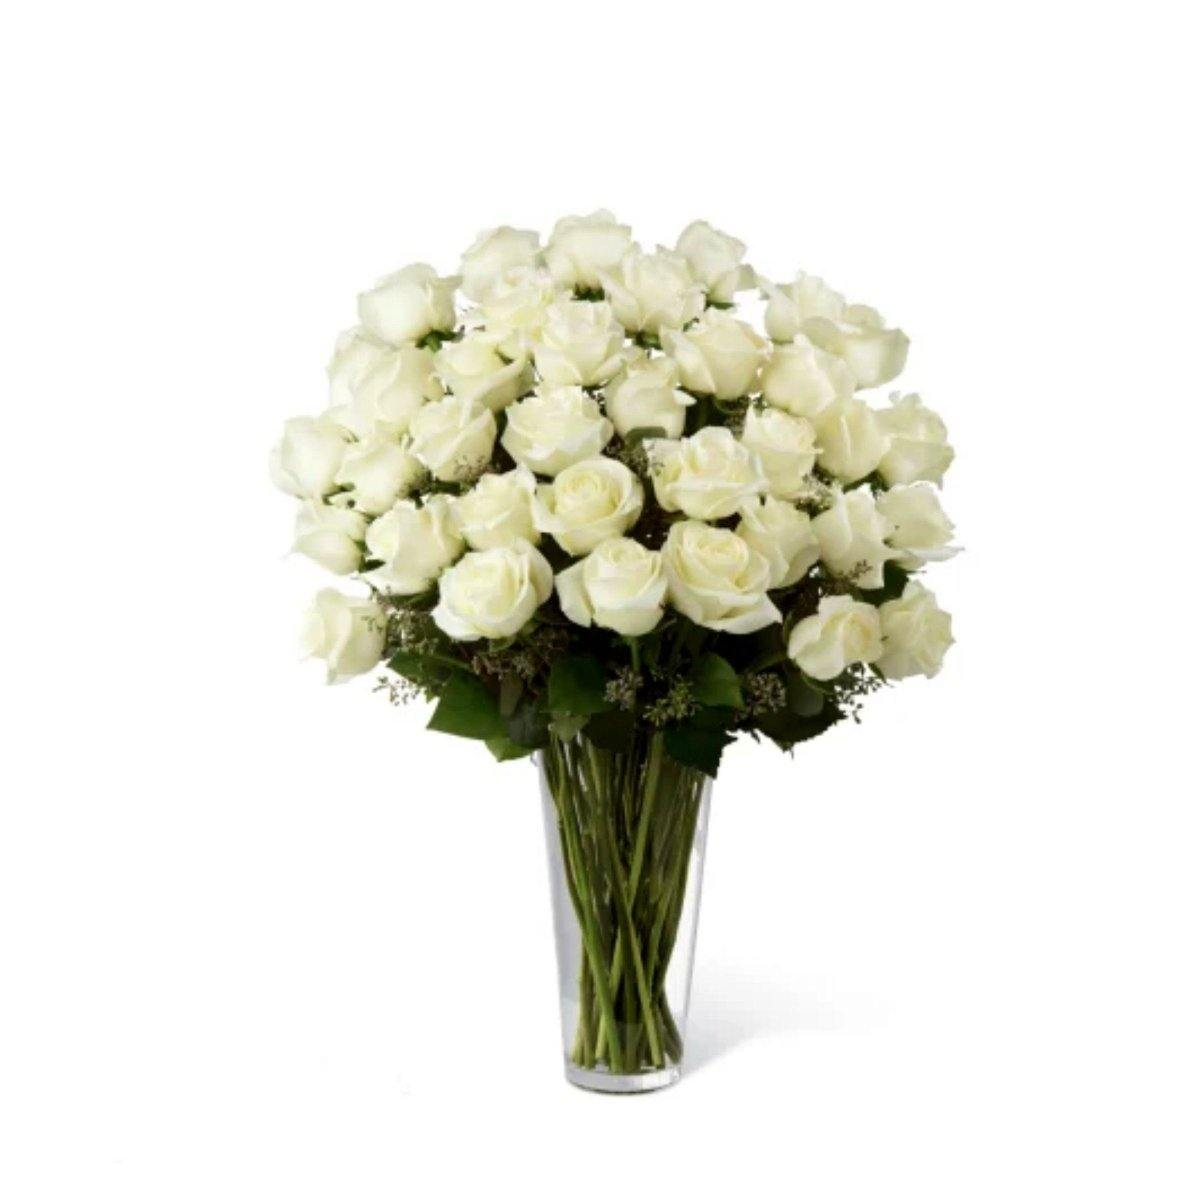 The FTD® White Rose Bouquet - Exquisite - Shalimar Flower Shop